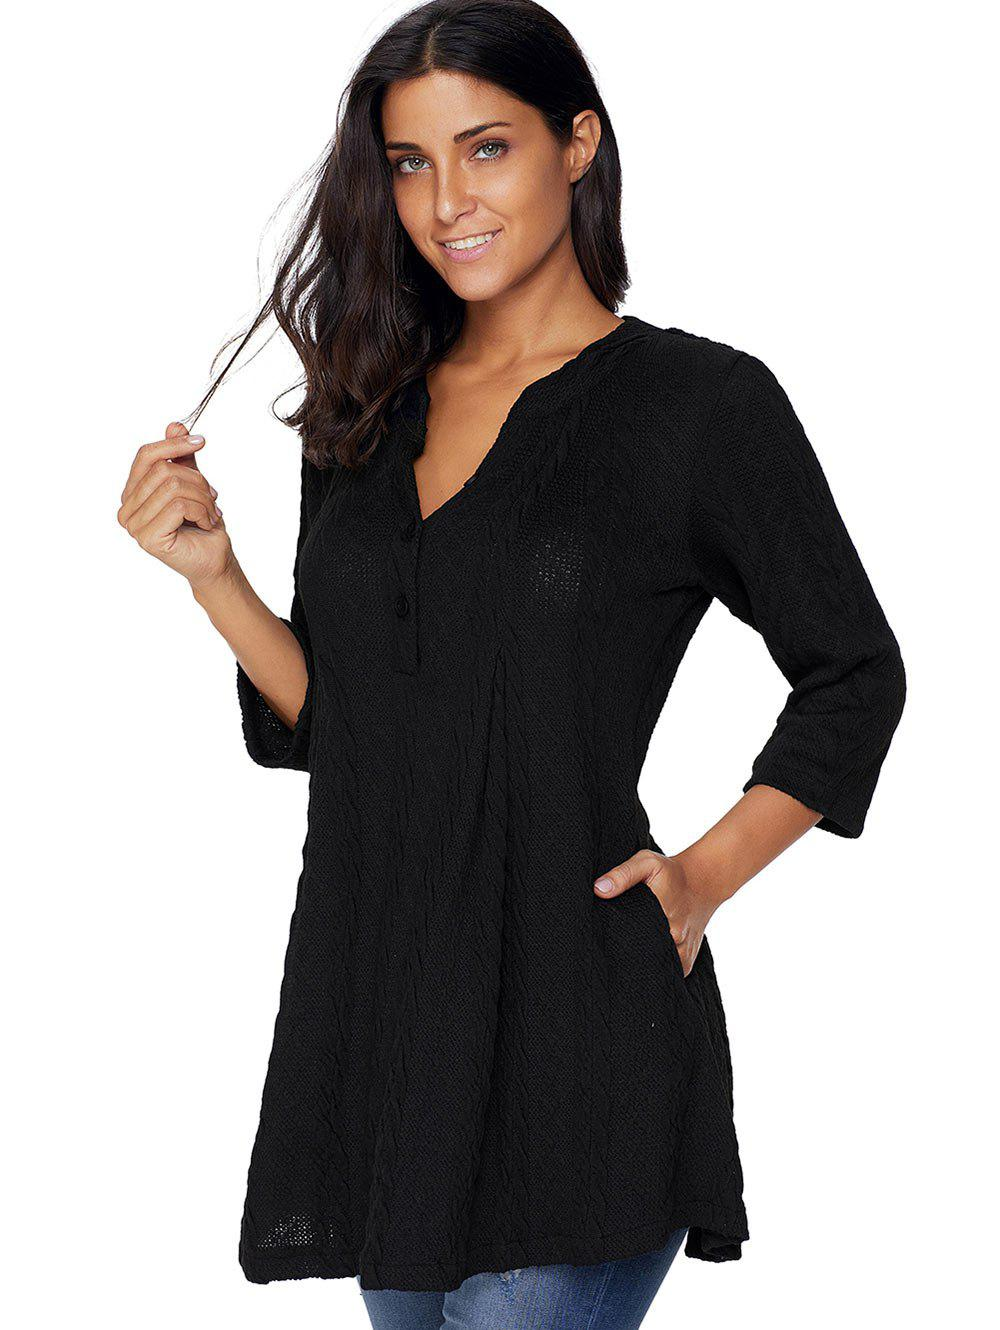 2018 V Neck Cable Knitted Tunic Sweater BLACK M In ...